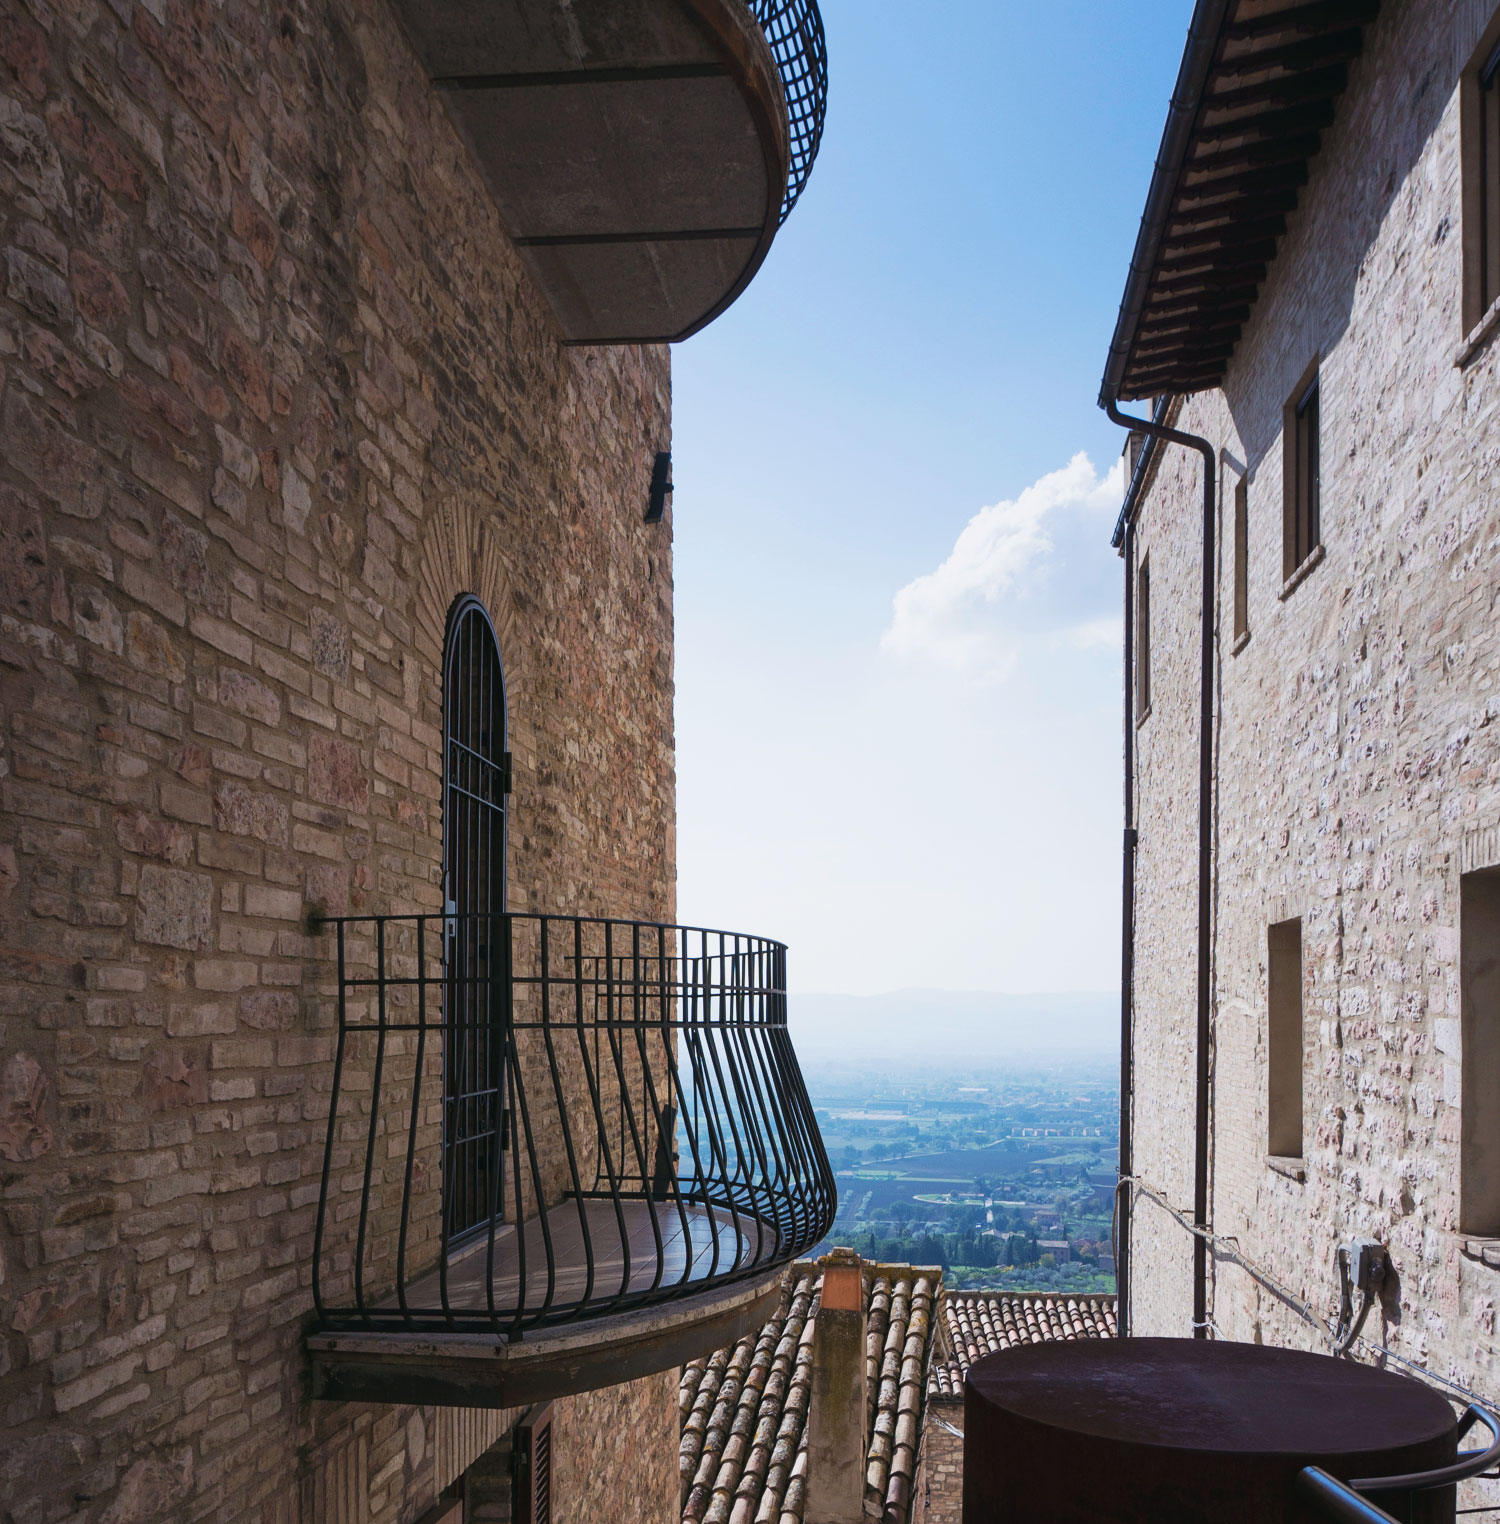 fantasiresor-italien-umbrien-assisi-perugia-16